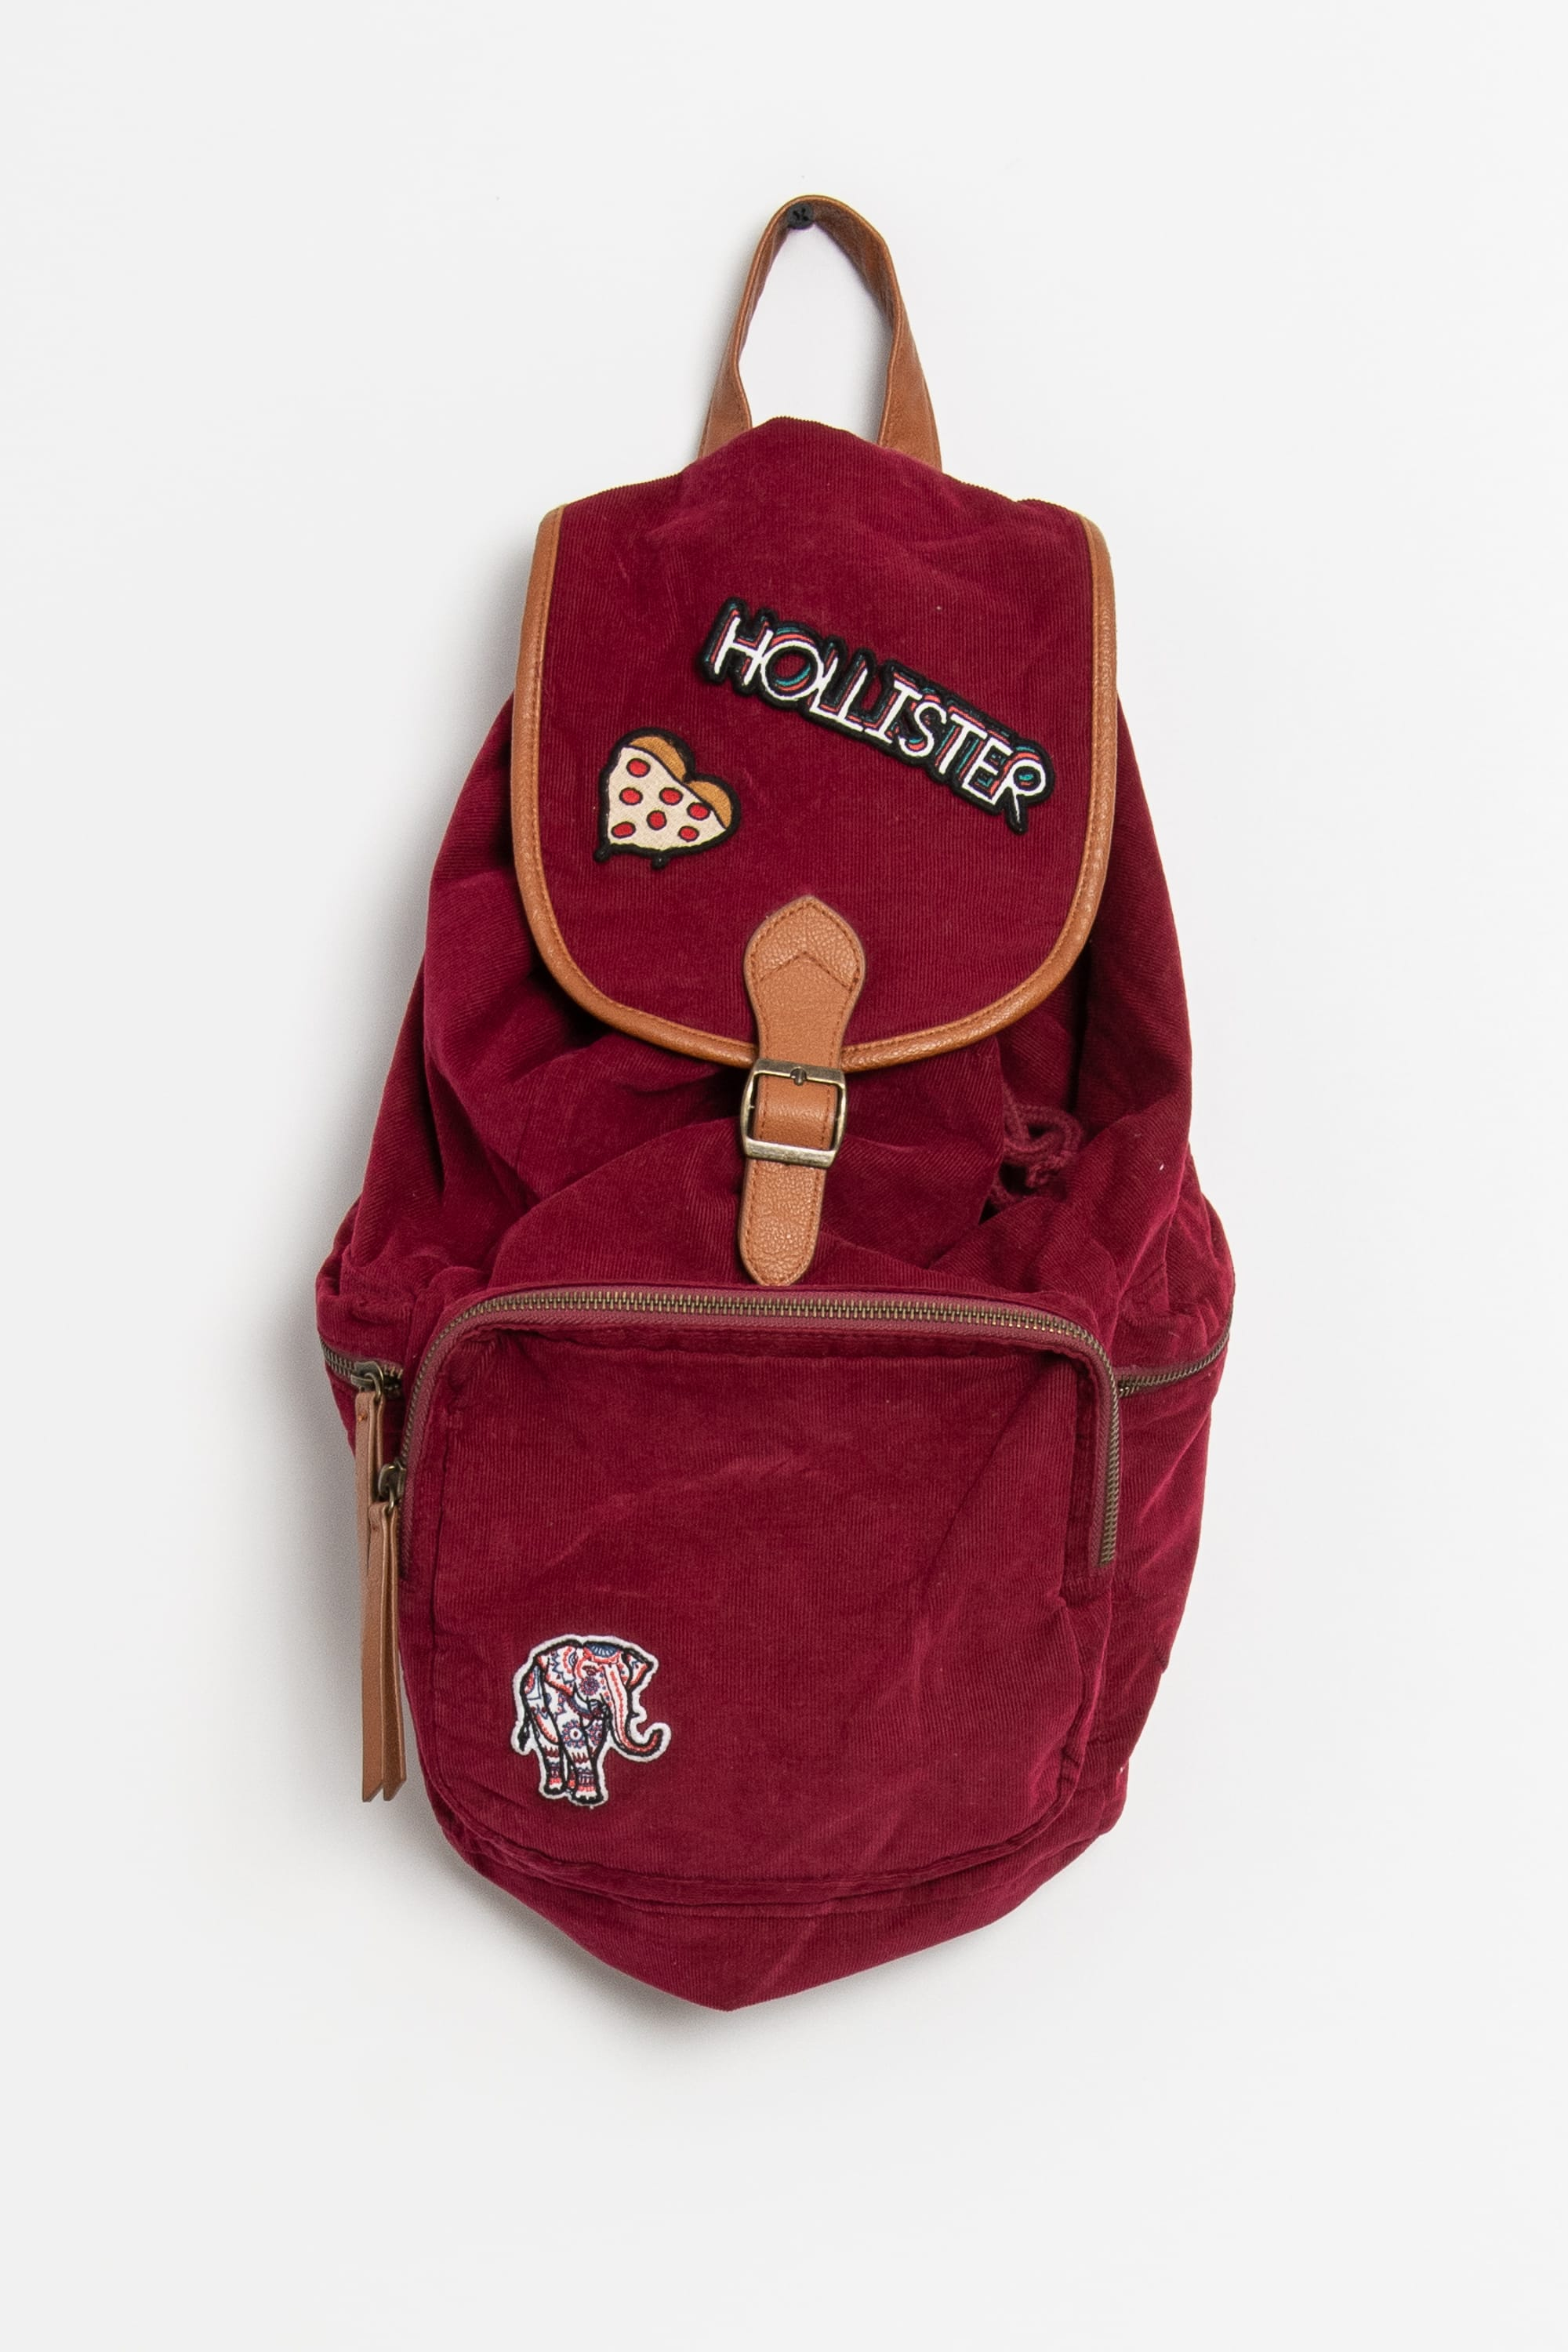 Hollister Co. Tasche Rot Gr.